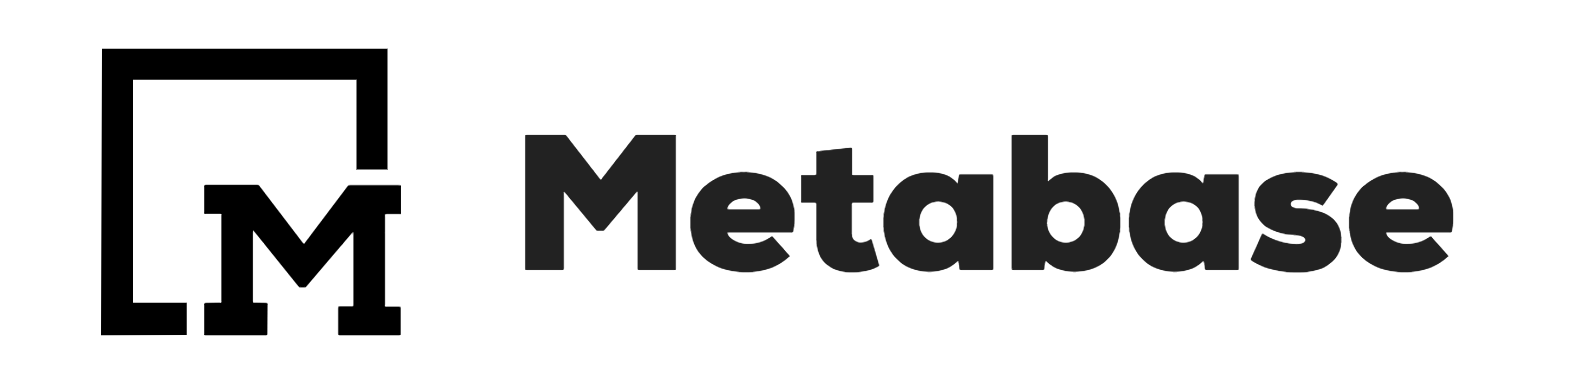 Image result for metabase ico